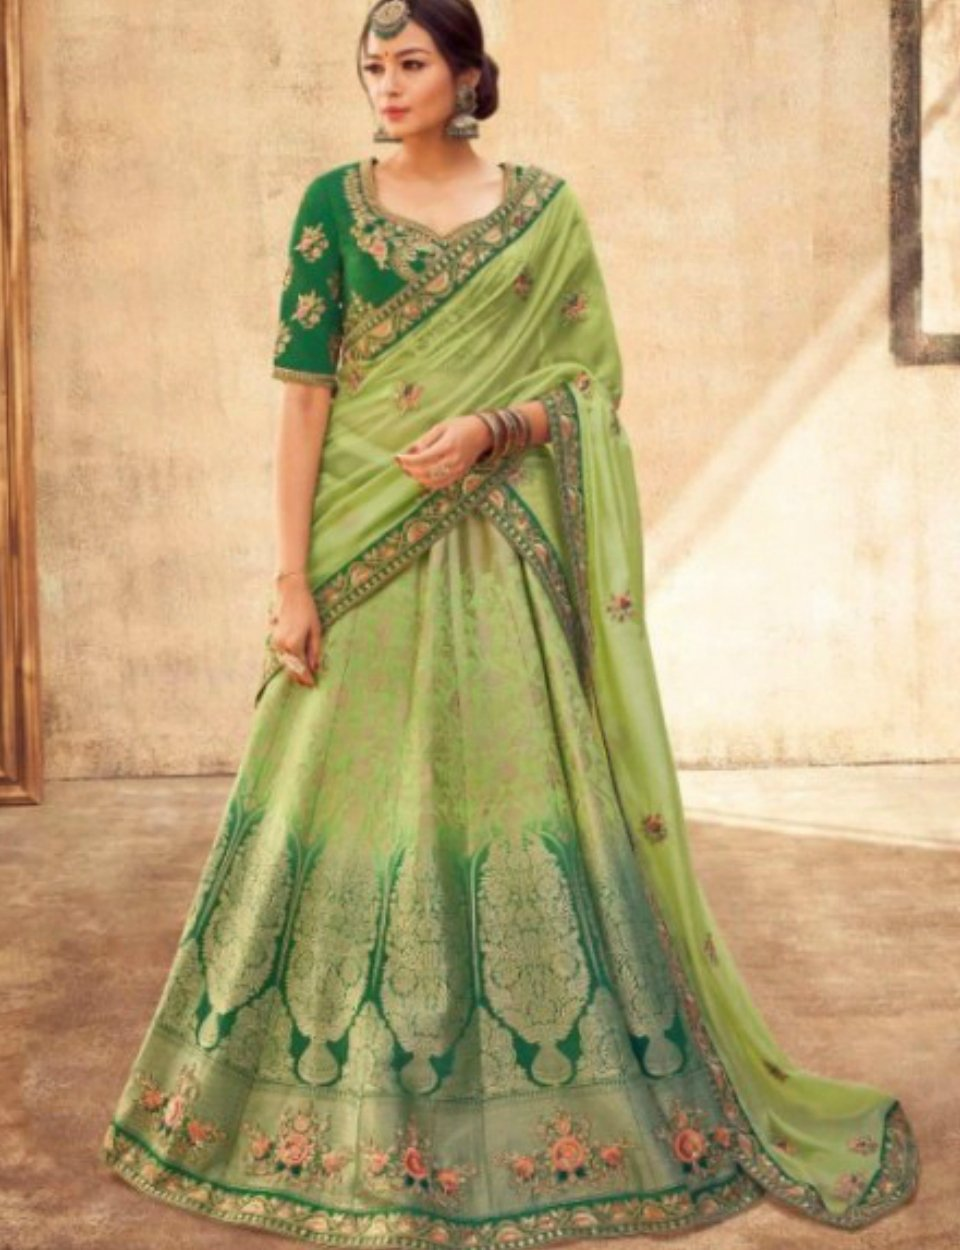 Exquisite KIM5009 Dressy Kimora Shaded Green Jacquard Silk Lehenga Choli by Fashion Nation